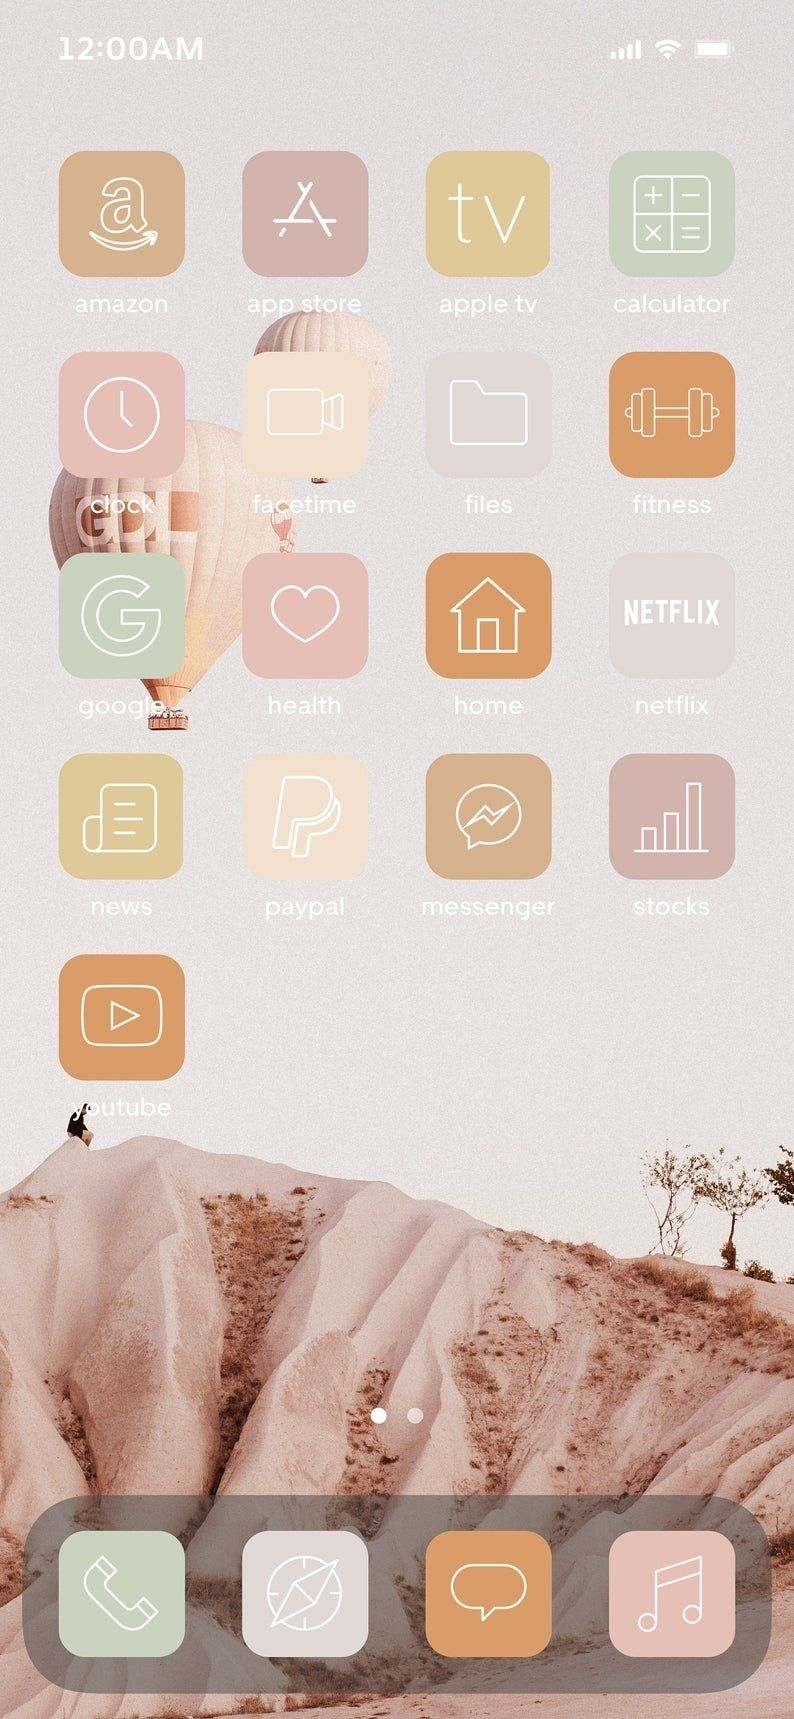 Pamper yourself with the aesthetic earth tone vibes with these high resolution 150 set of icons that are customized for your own preference. 20 Aesthetic iOS14 App Icons That'll Make Your Phone Feel ...